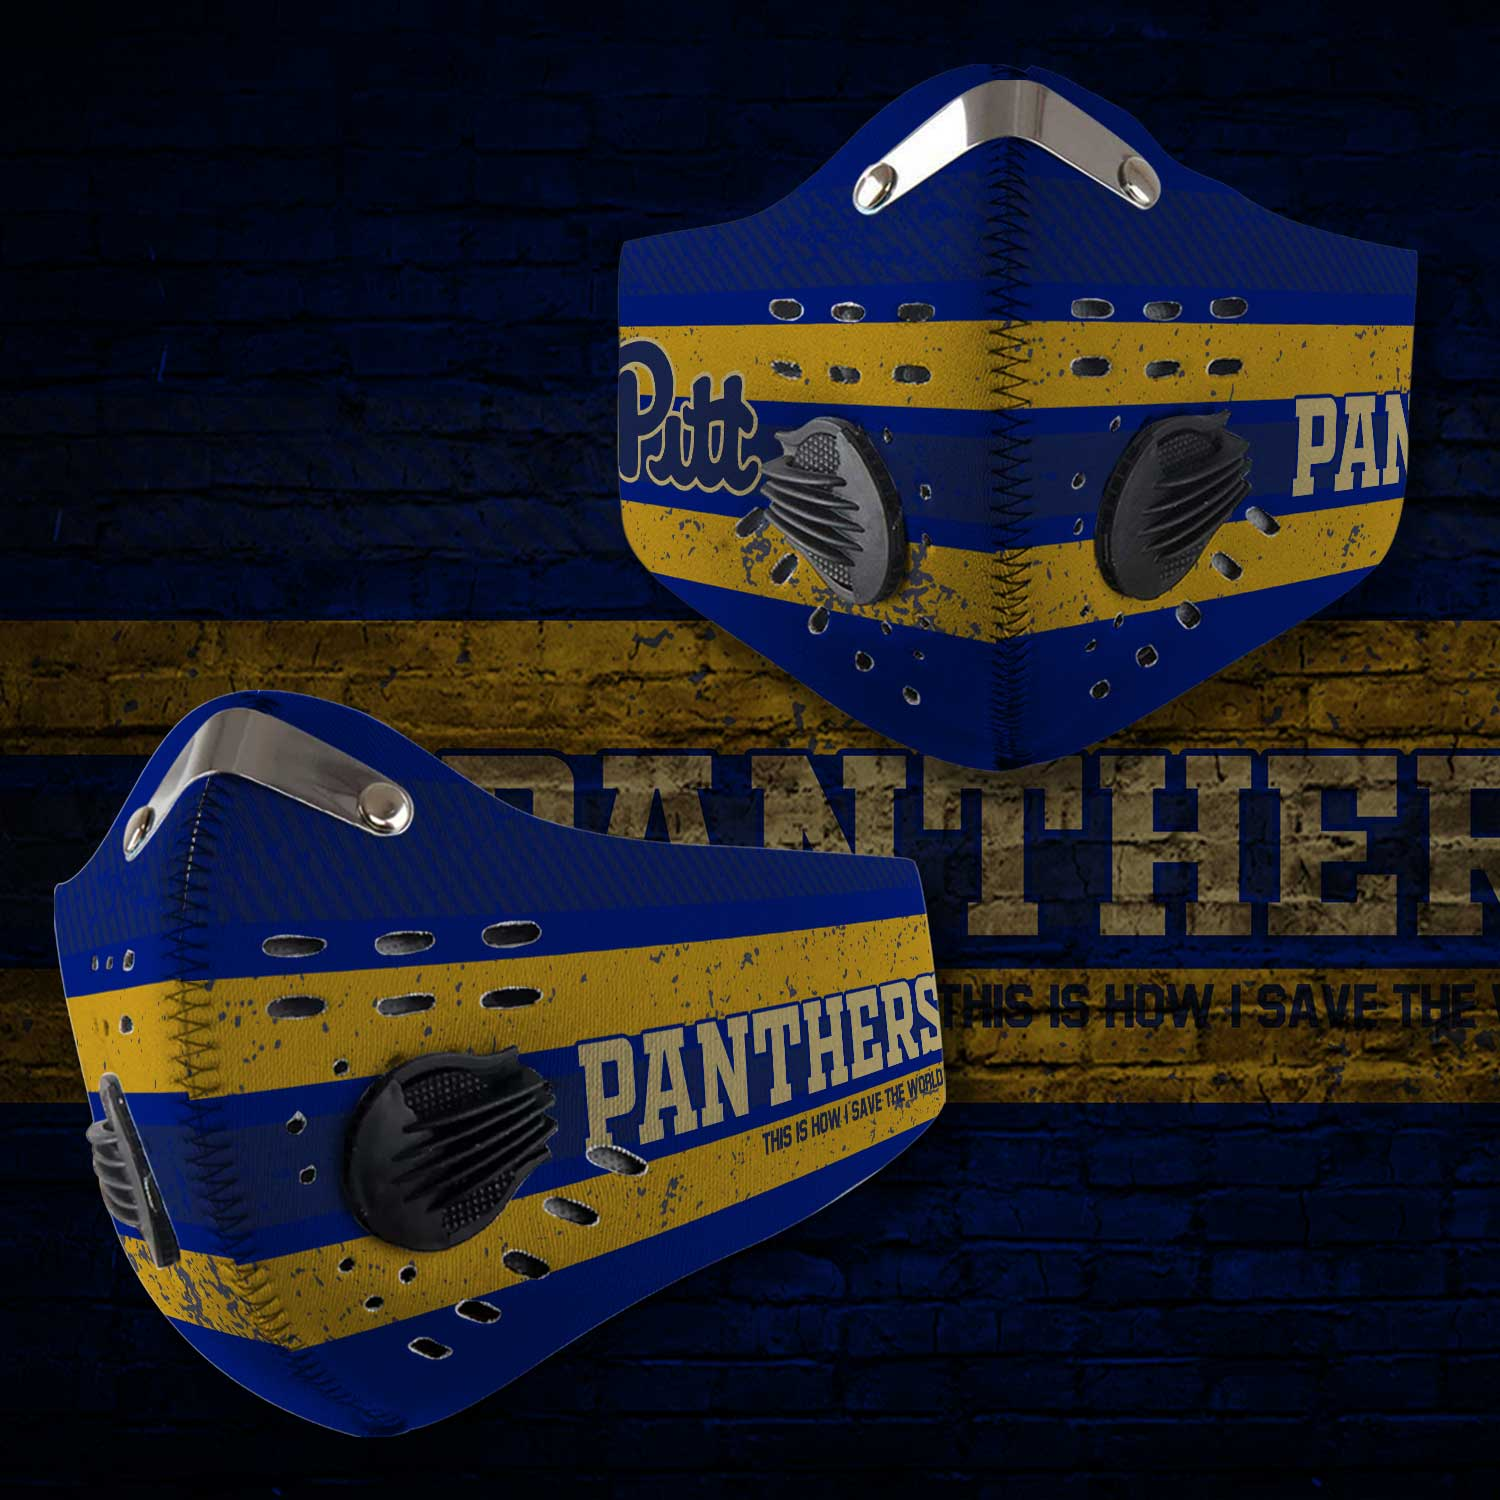 Pitt panthers this is how i save the world carbon filter face mask 2